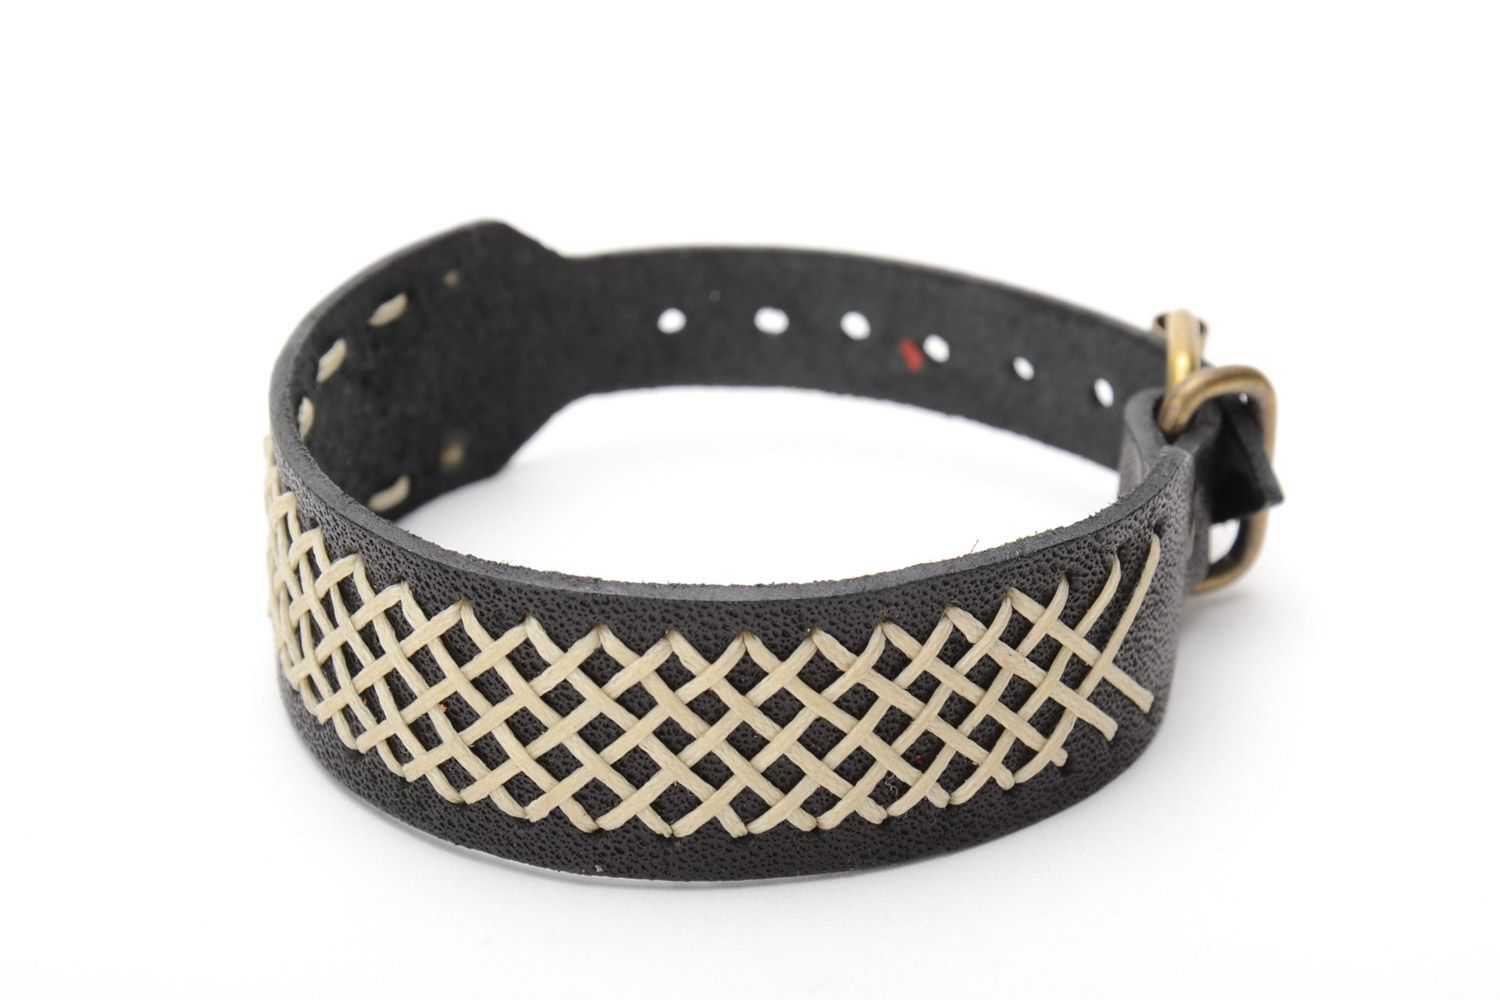 leather bracelets Handmade genuine leather wide bracelet of black color unisex - MADEheart.com